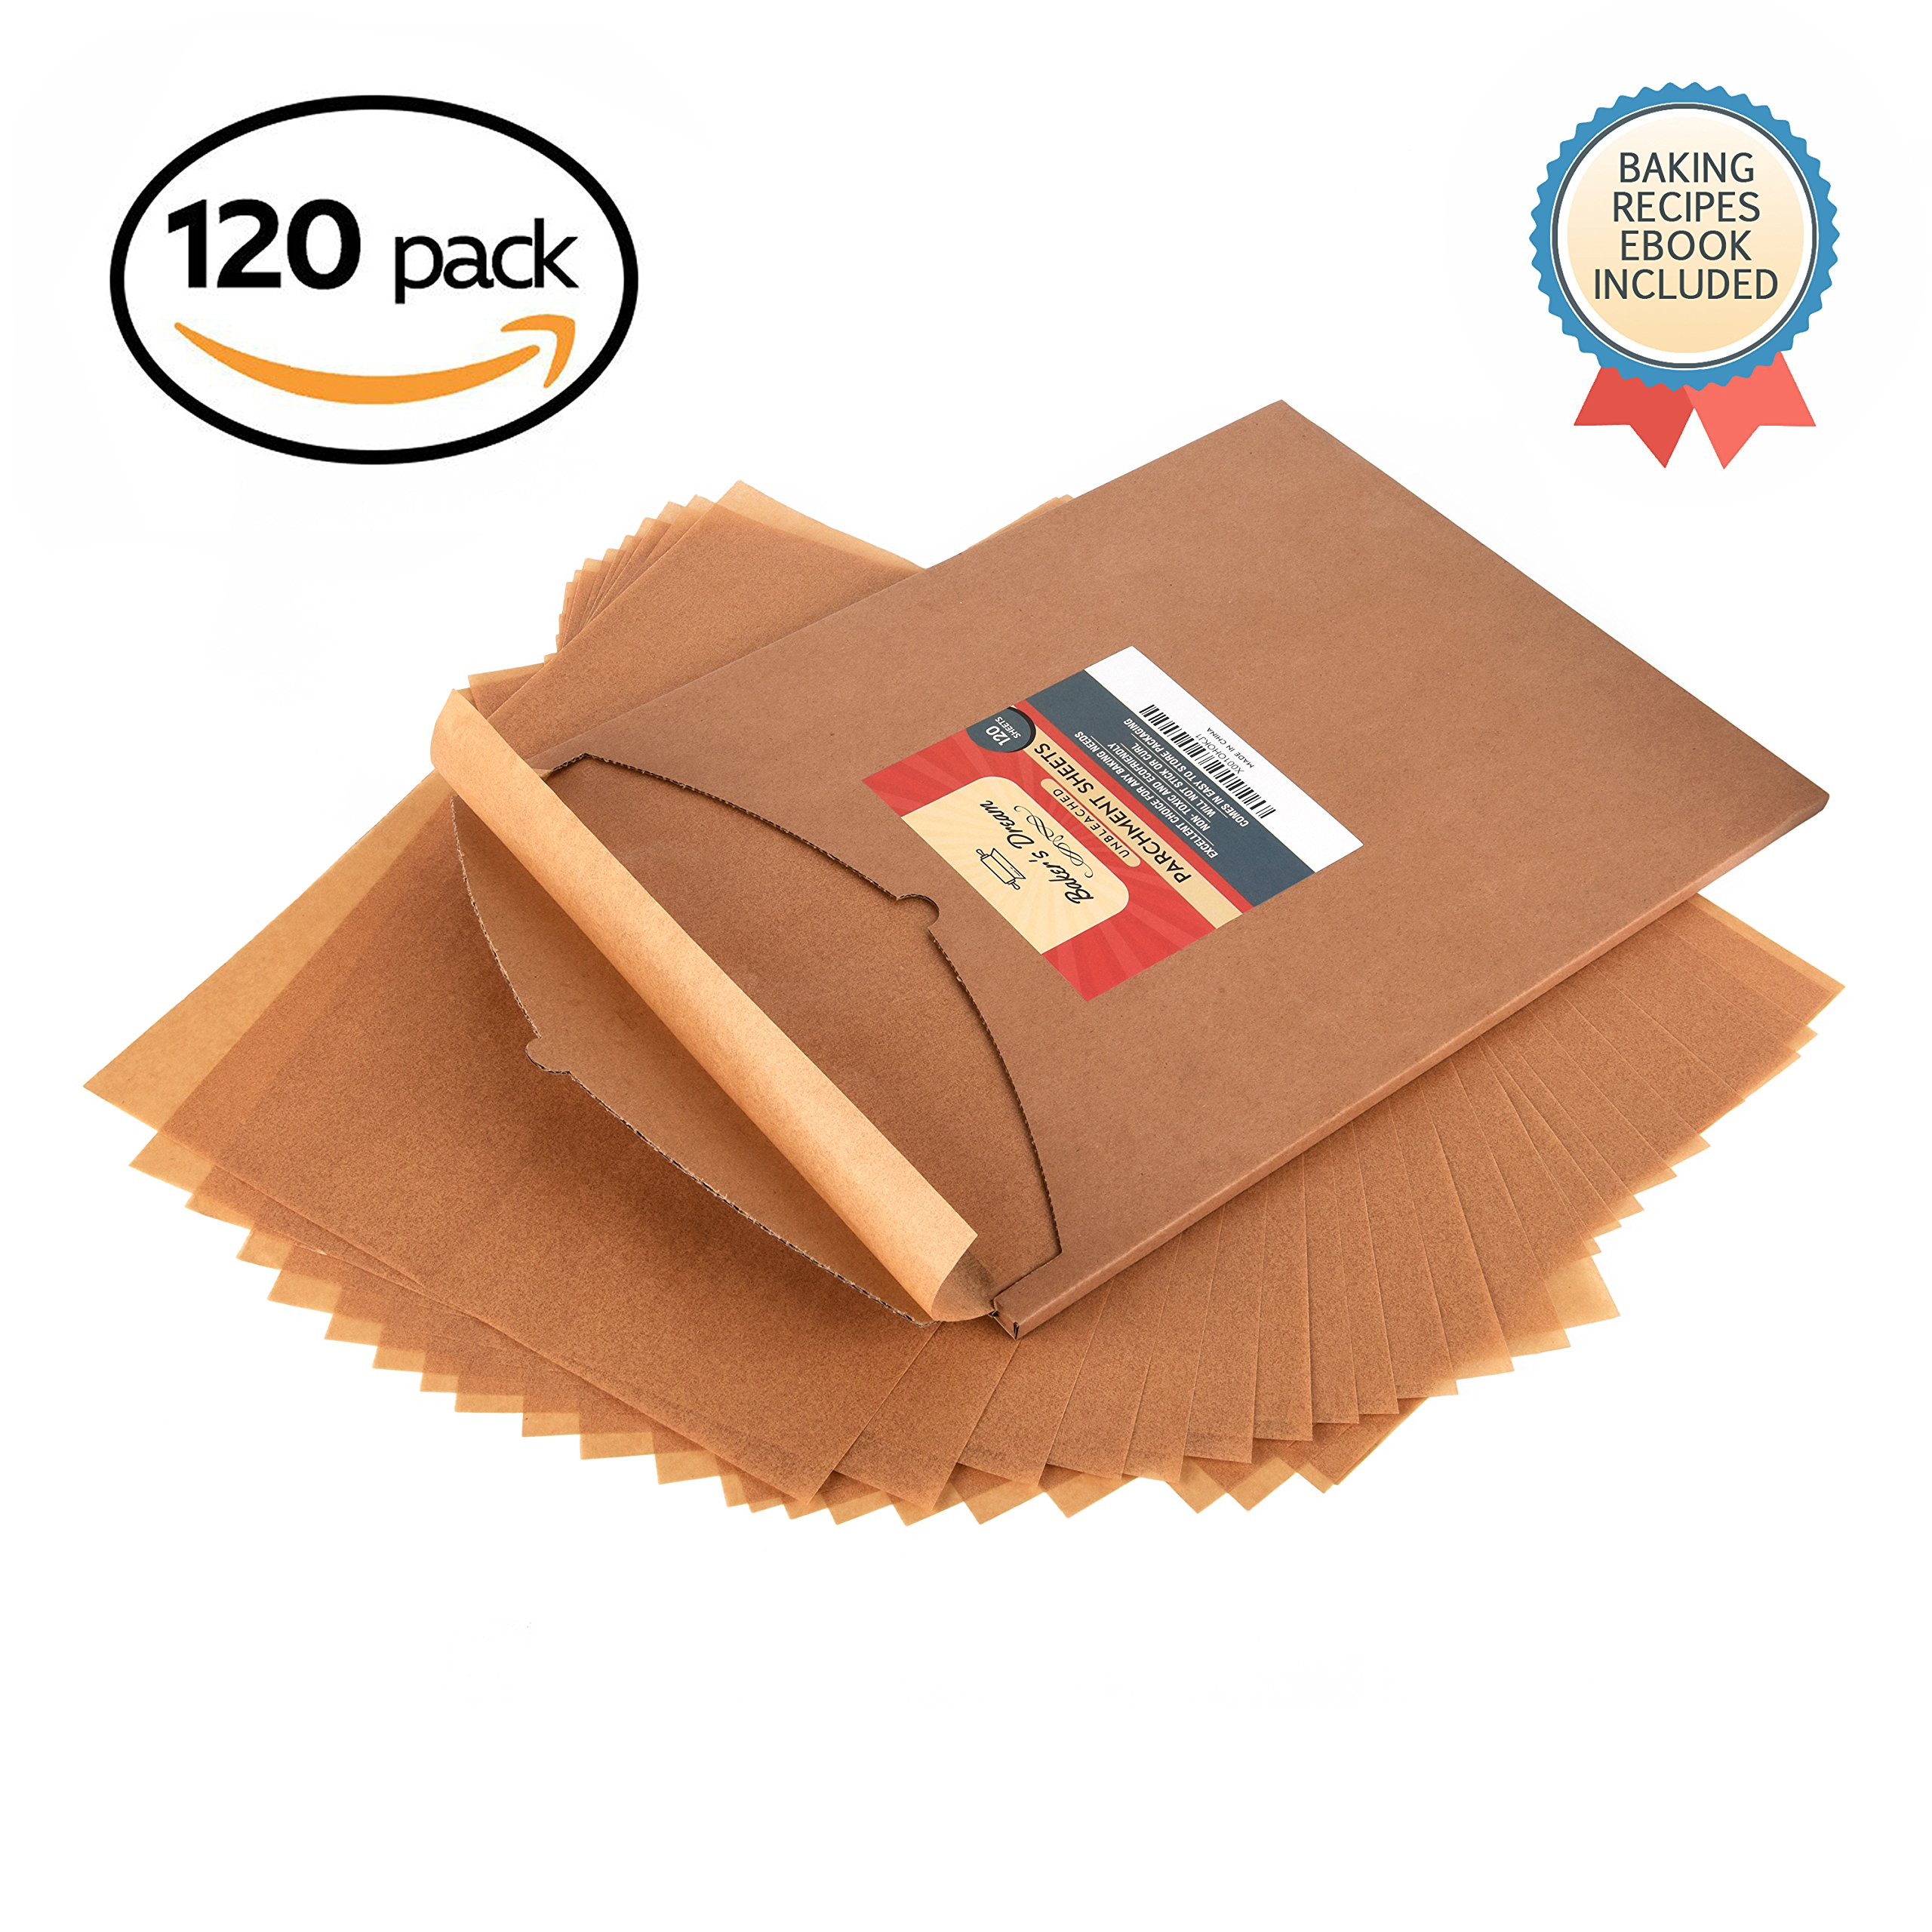 Parchment Paper Baking Sheets by Baker's Dream | Precut Non-Stick & Unbleached - Will Not Curl or Burn - Non-Toxic & Comes in Convenient Packaging - 12x16 Inch Pack of 120